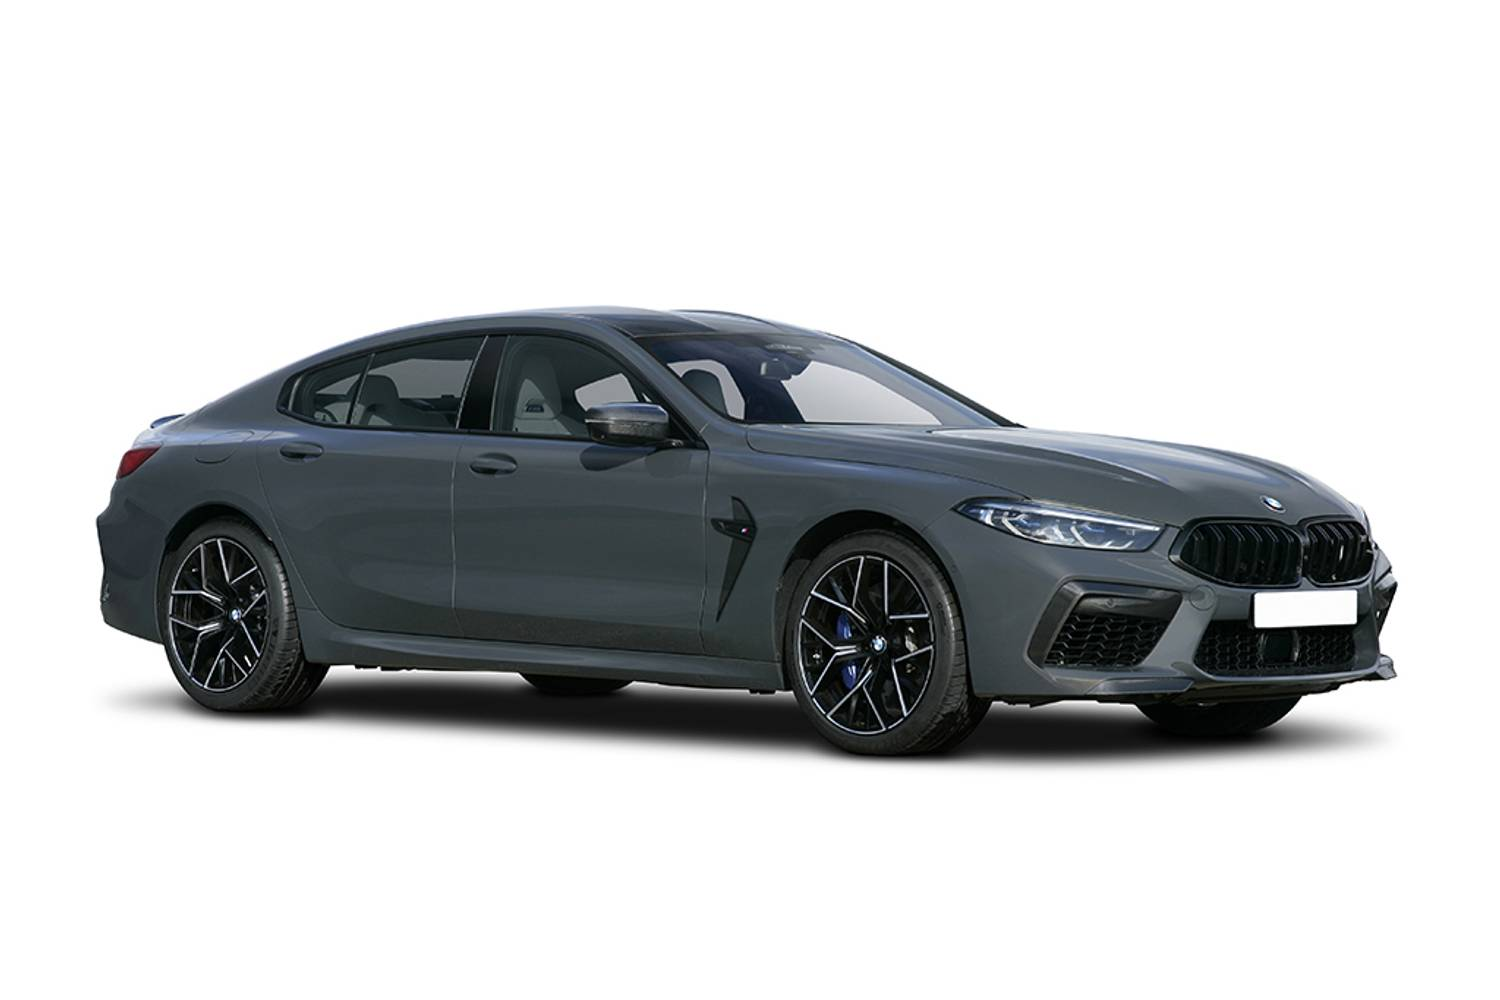 New Bmw M8 Gran Coupe M8 Competition 4 Door Step Auto Ultimate Pack 2020 For Sale